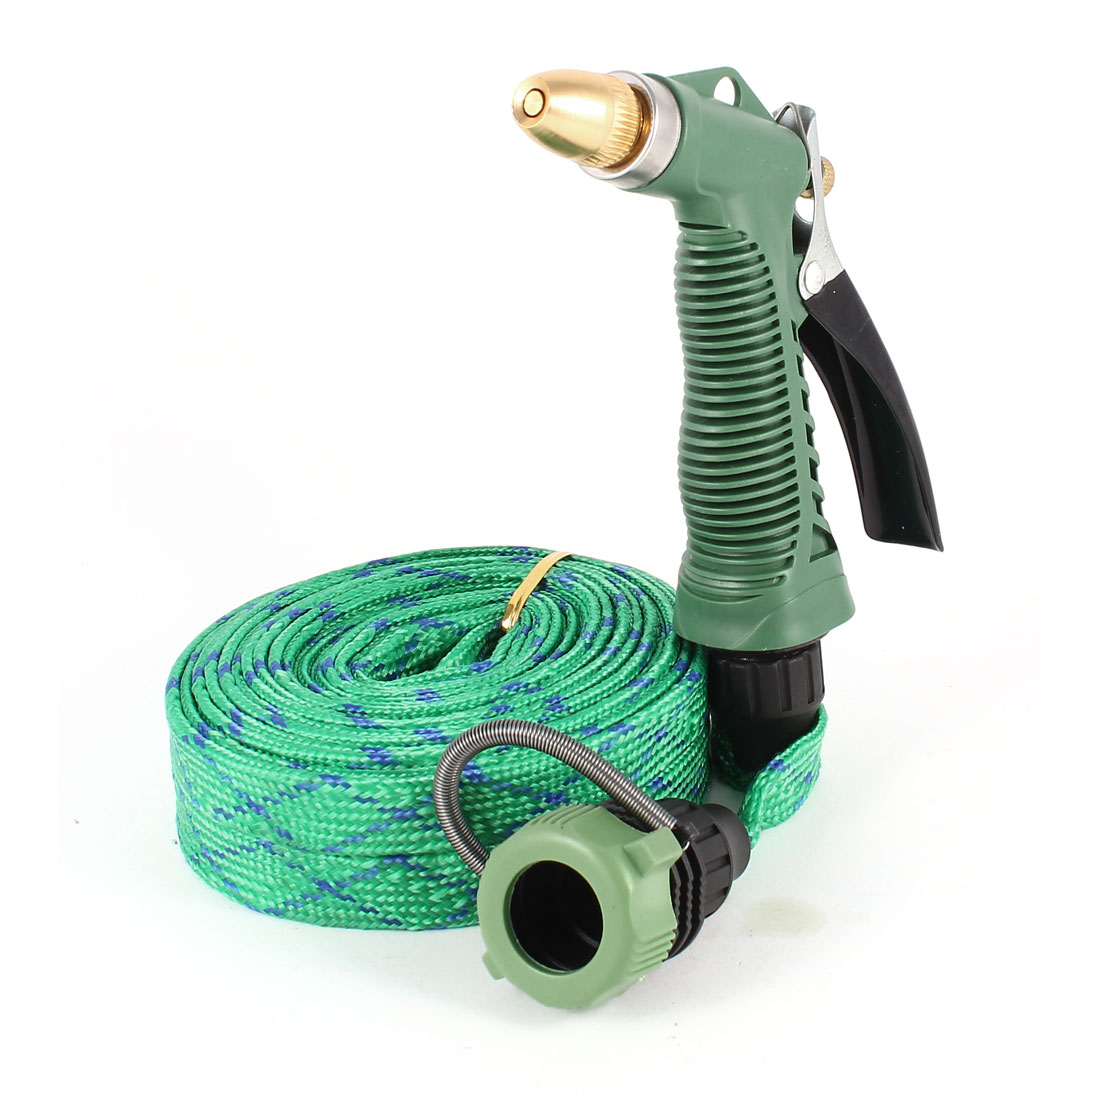 5M Long Nylon Hose Garden Watering Car Auto Washing Gun Sprayer Green Black